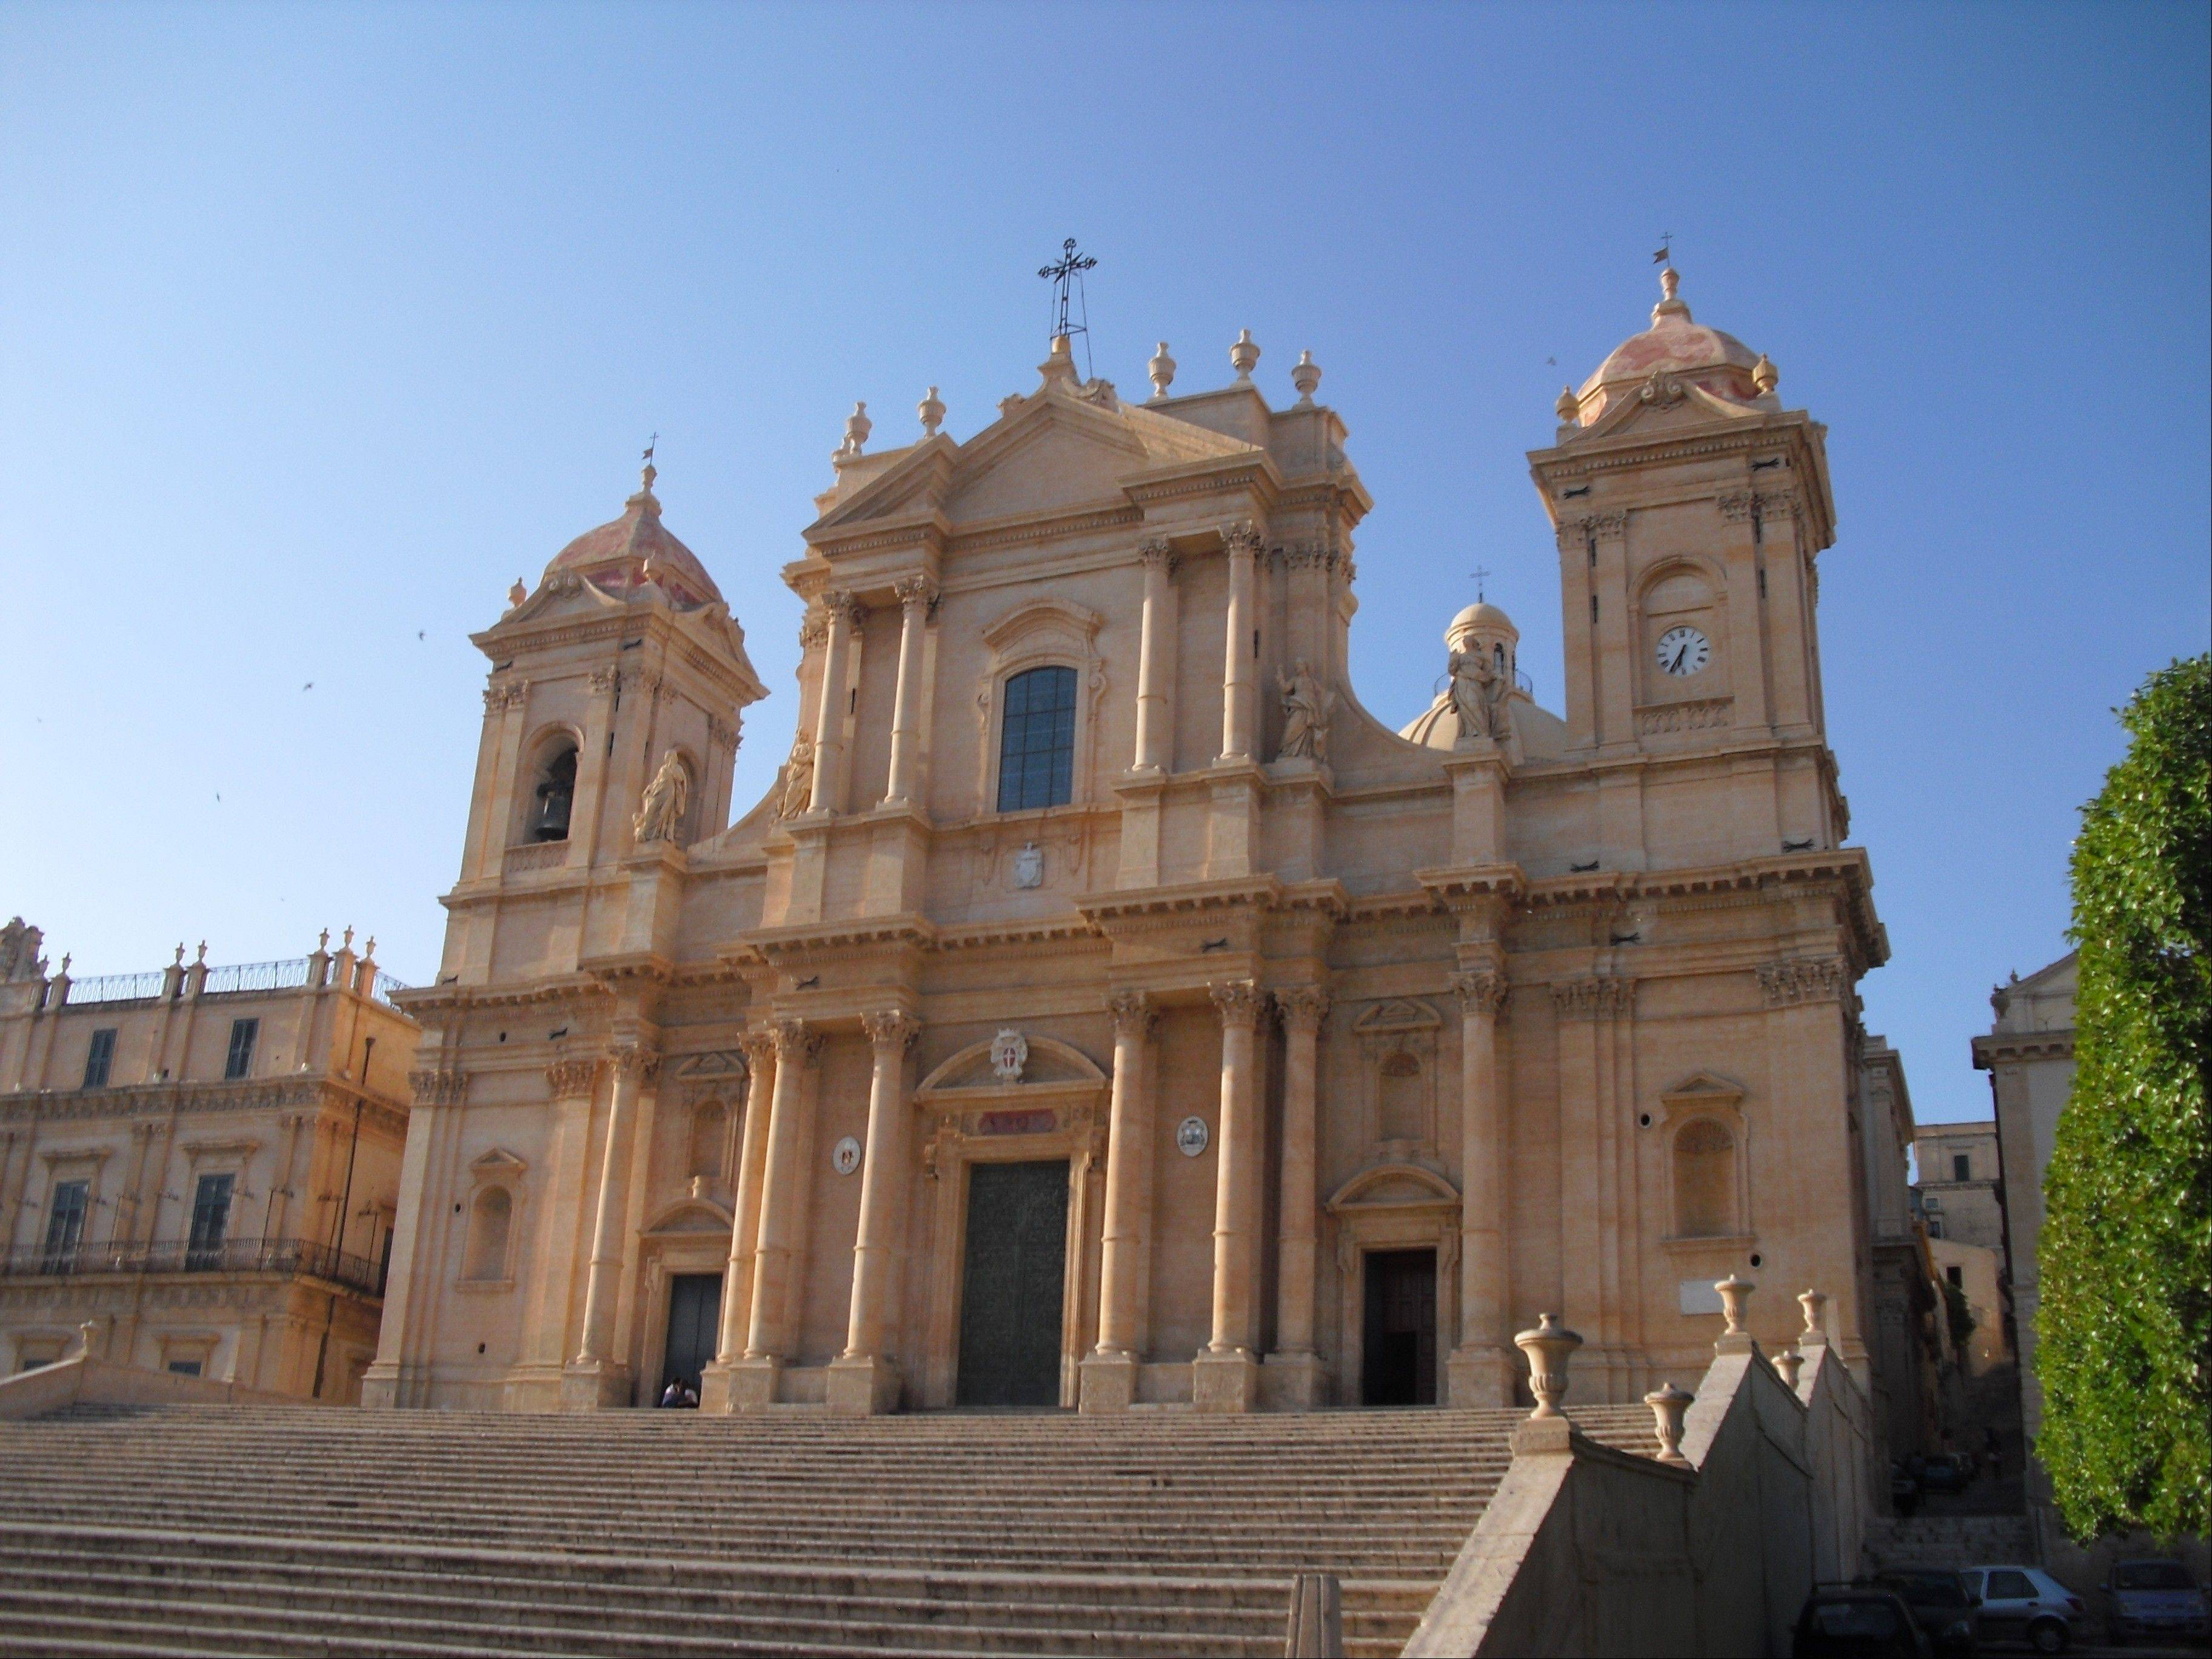 The dome of the baroque San Nicolo Cathedral in the Sicilian town of Noto collapsed in 1996, and the structure was rebuilt and reopened in 2007.